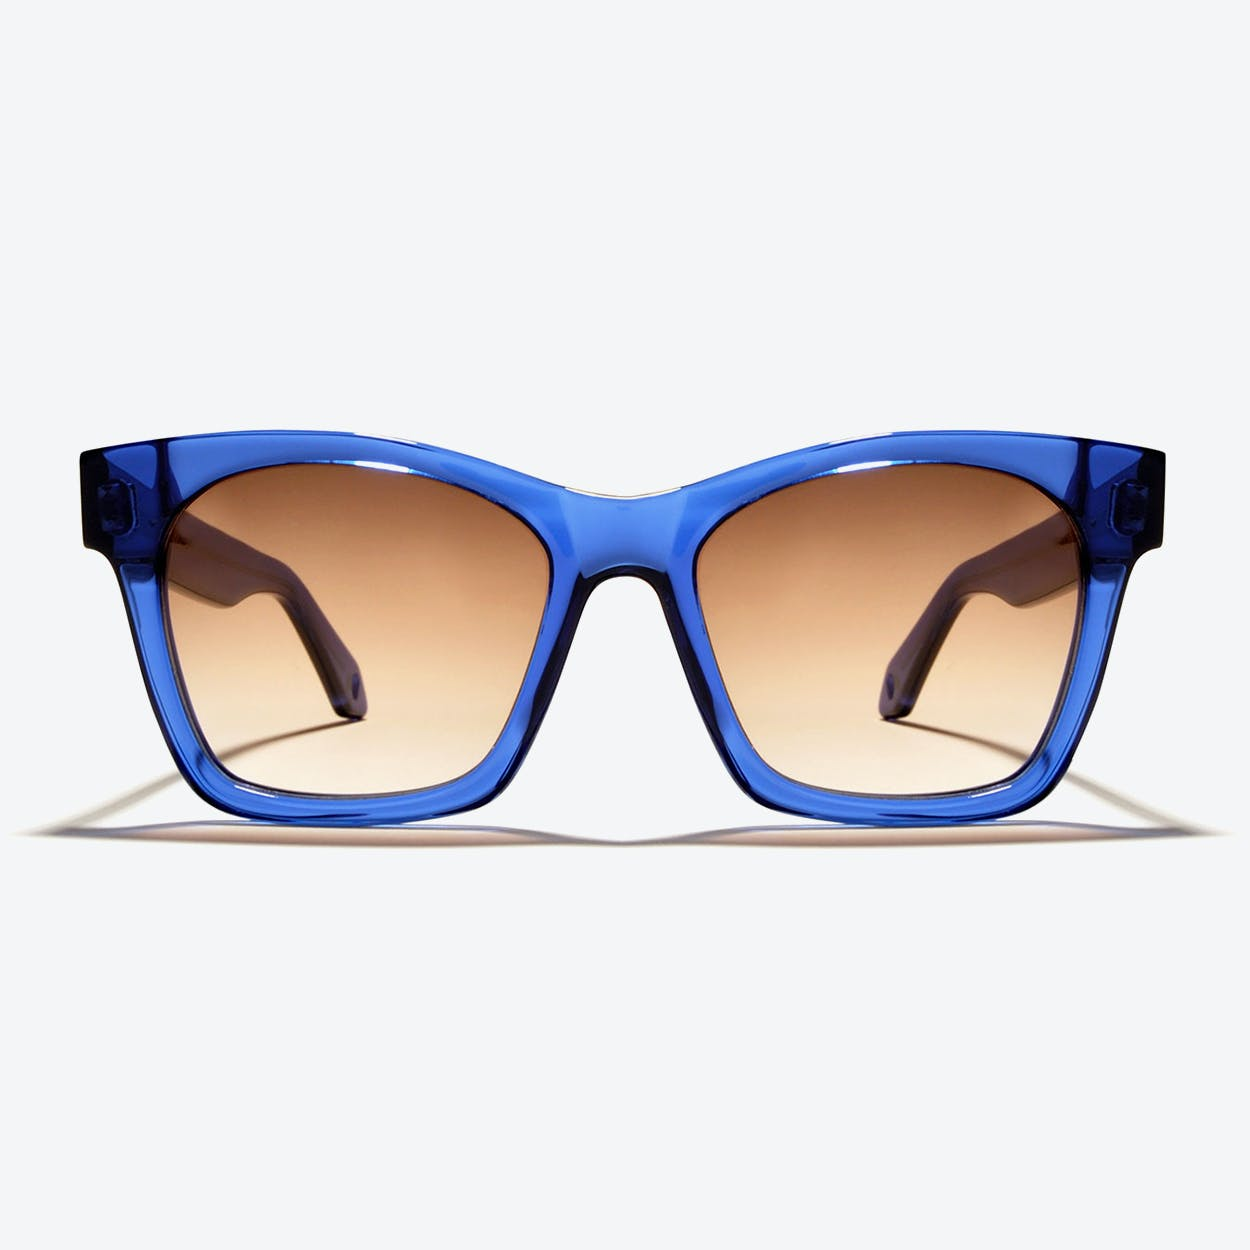 Draco Sunglasses in Blue